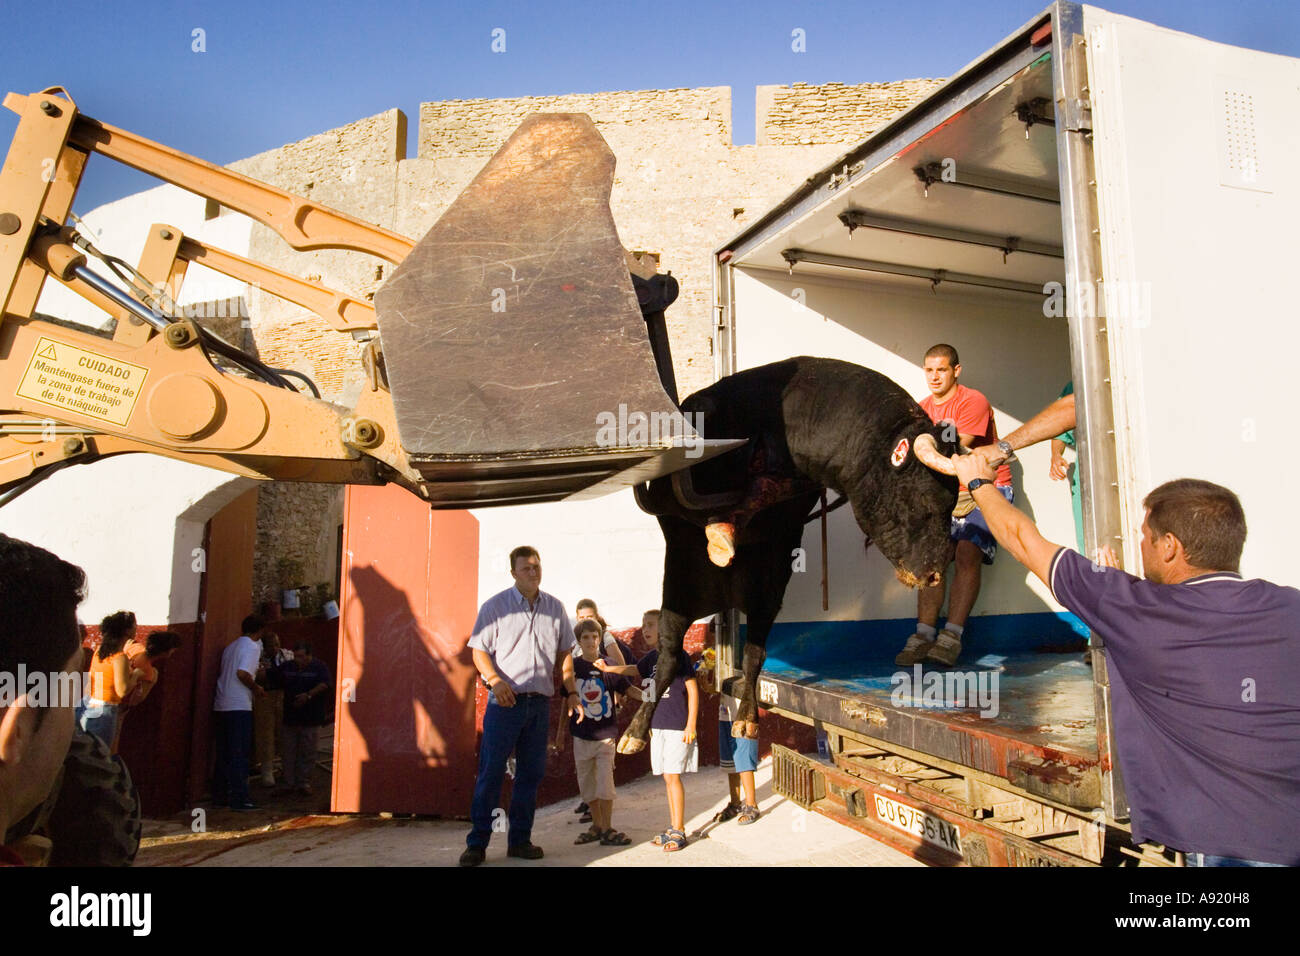 dead bull taken from bullring with horrified  spectators and children watching the bull lifted into a refridgerated truck - Stock Image